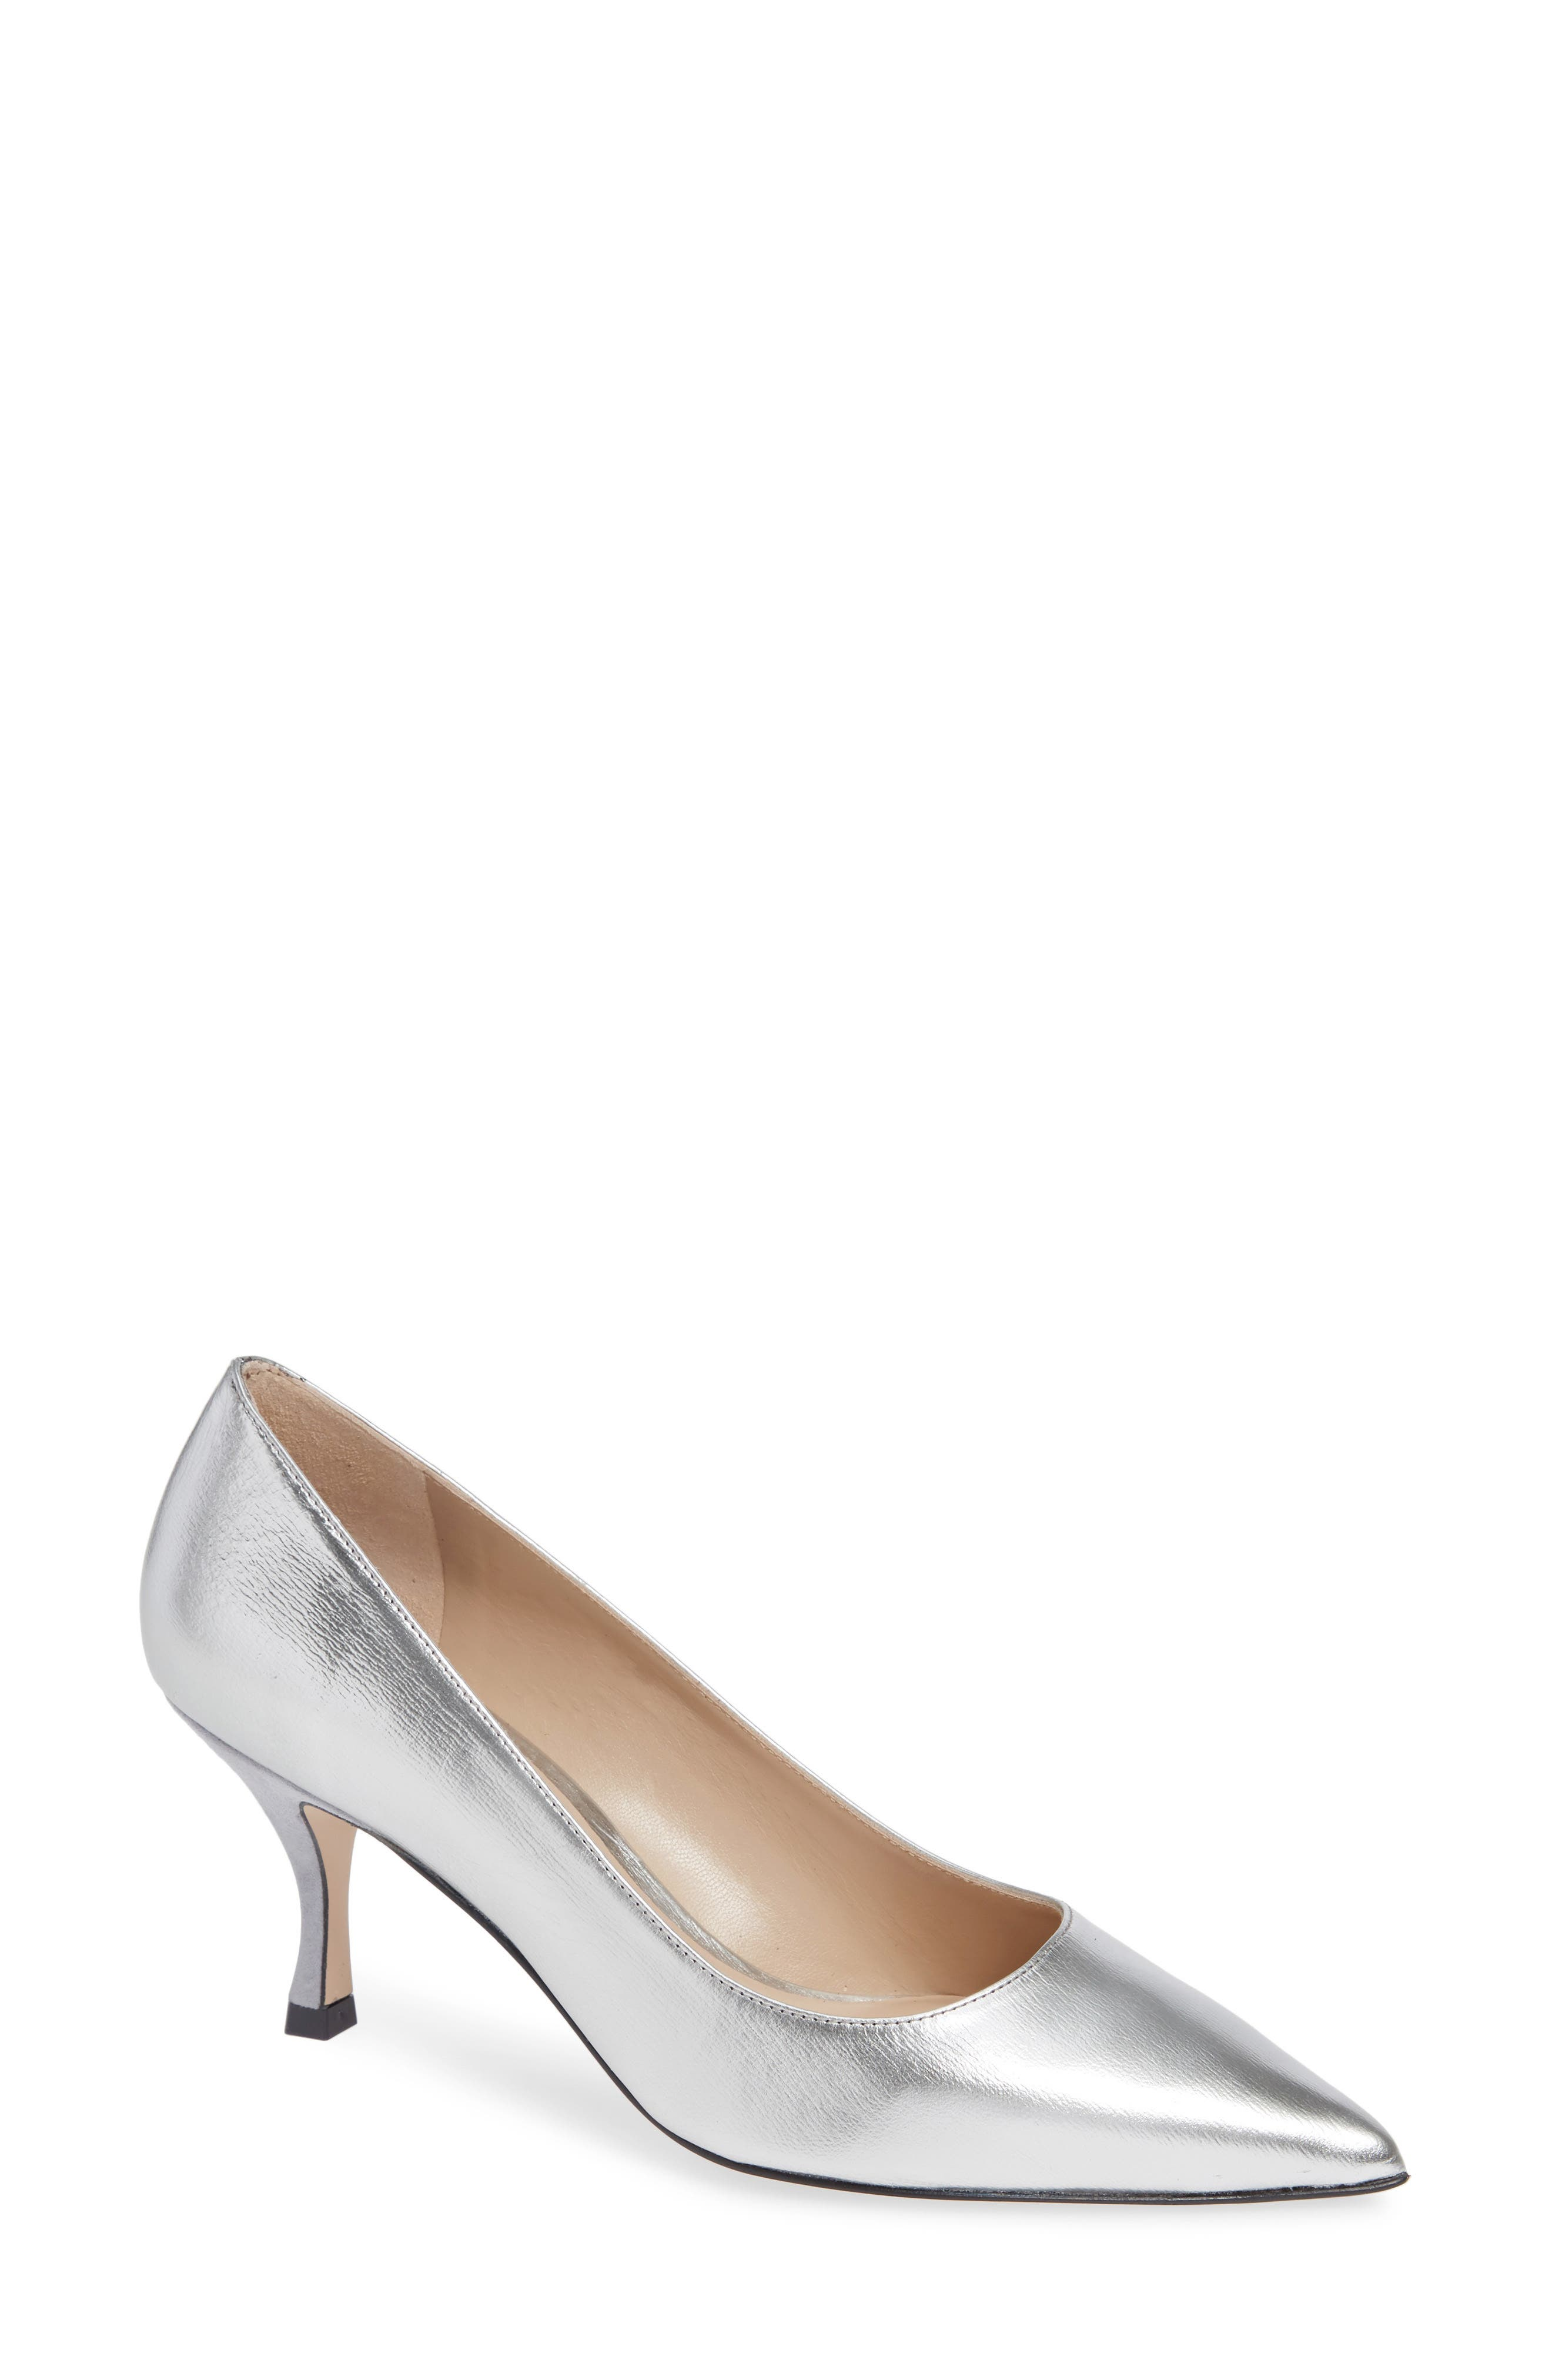 Tippi 70 Pointy Toe Pump,                             Main thumbnail 1, color,                             SILVER VENICE